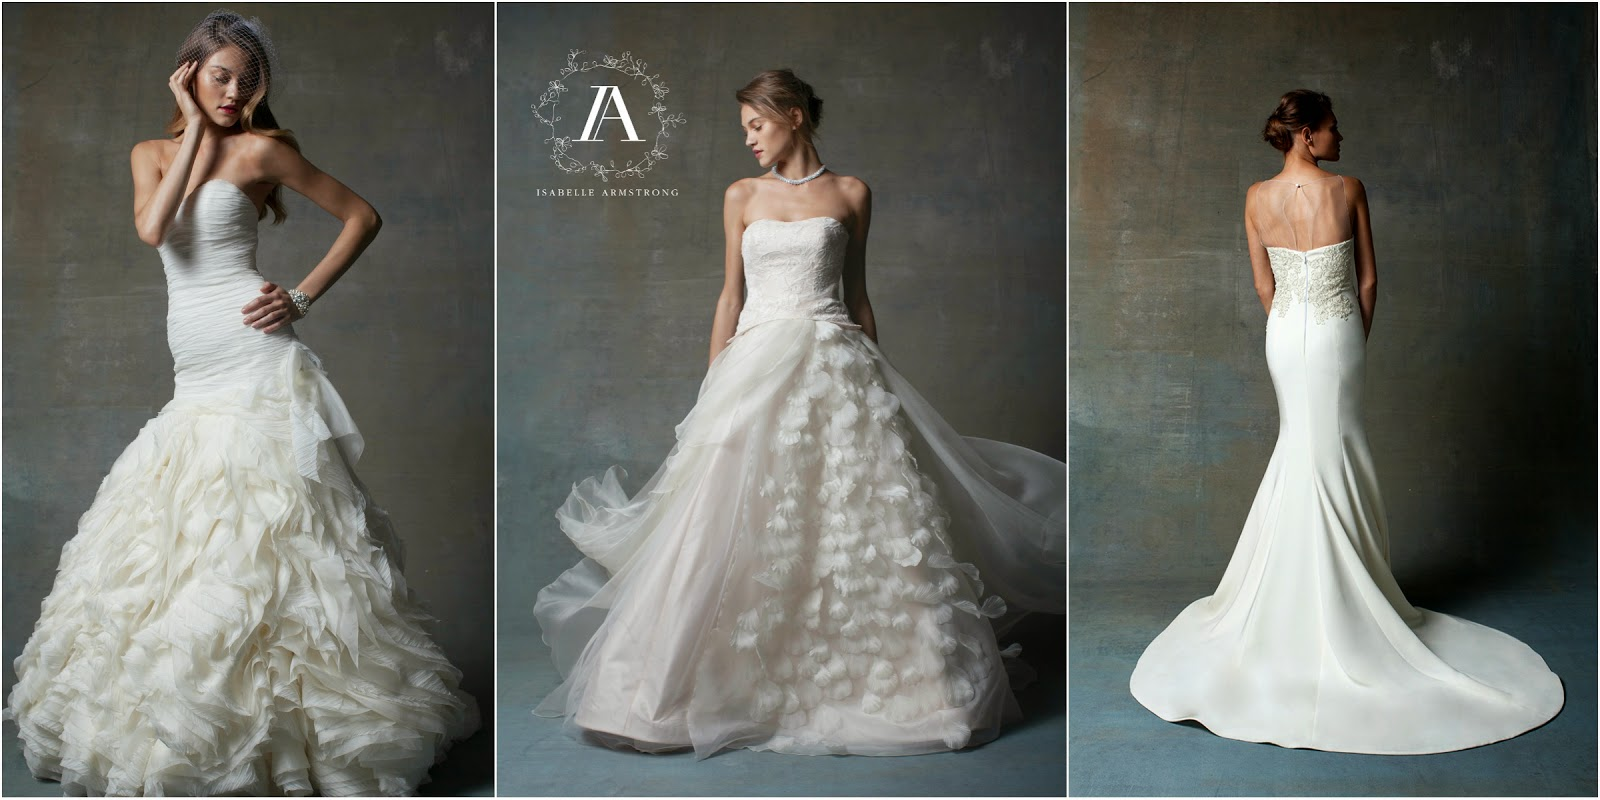 Isabelle Armstrong Wedding Gowns